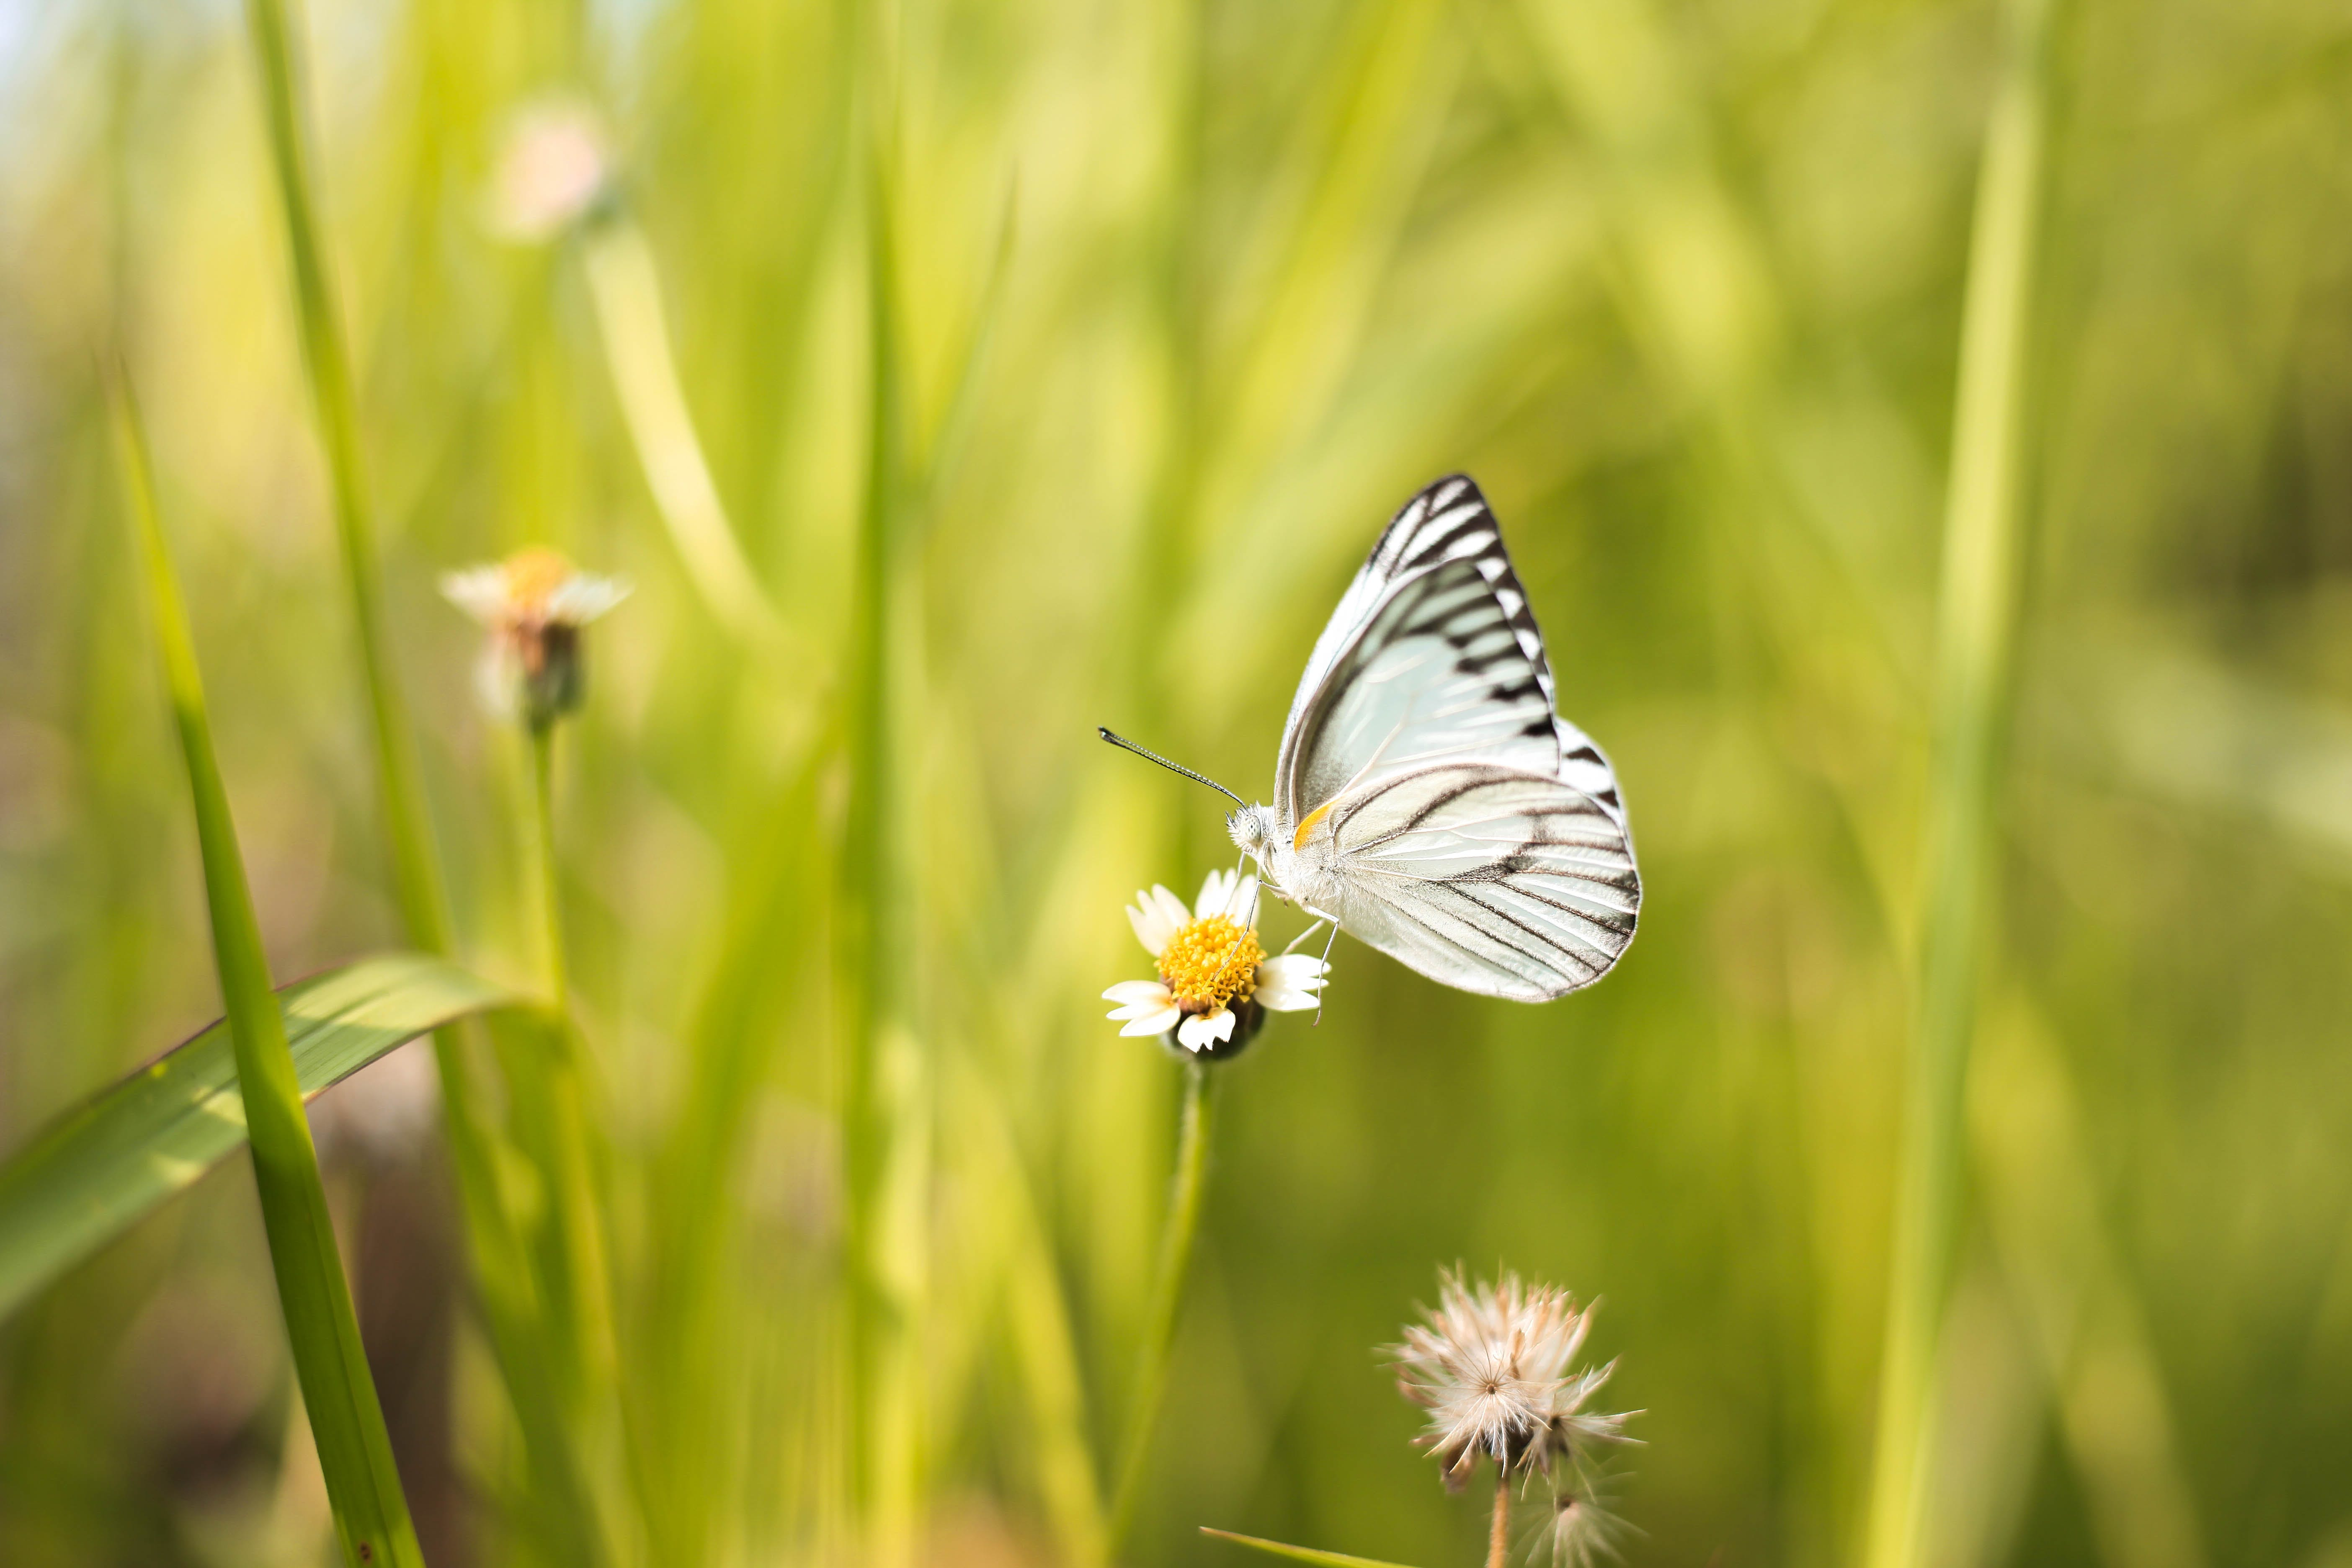 White and Black Butterfly on White Flower